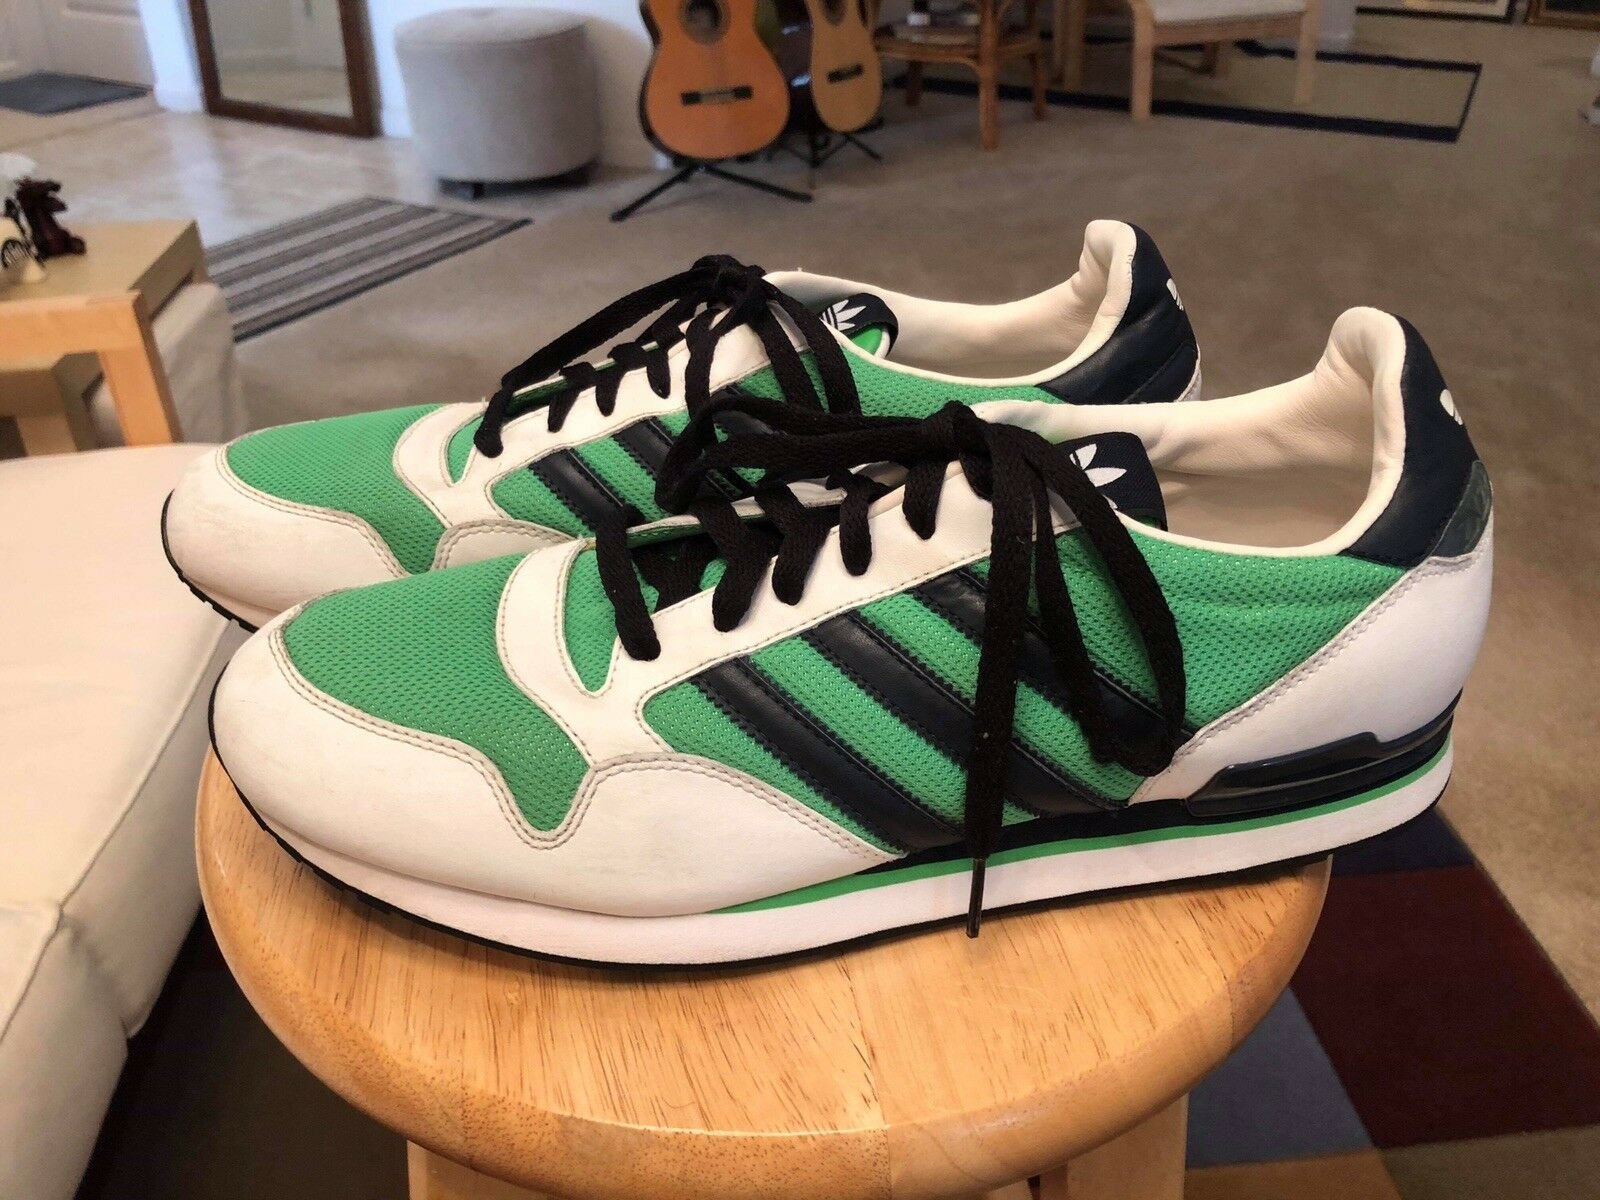 Adidas 661279 Green White bluee Men's US12 Leather Athletic Sneakers shoes